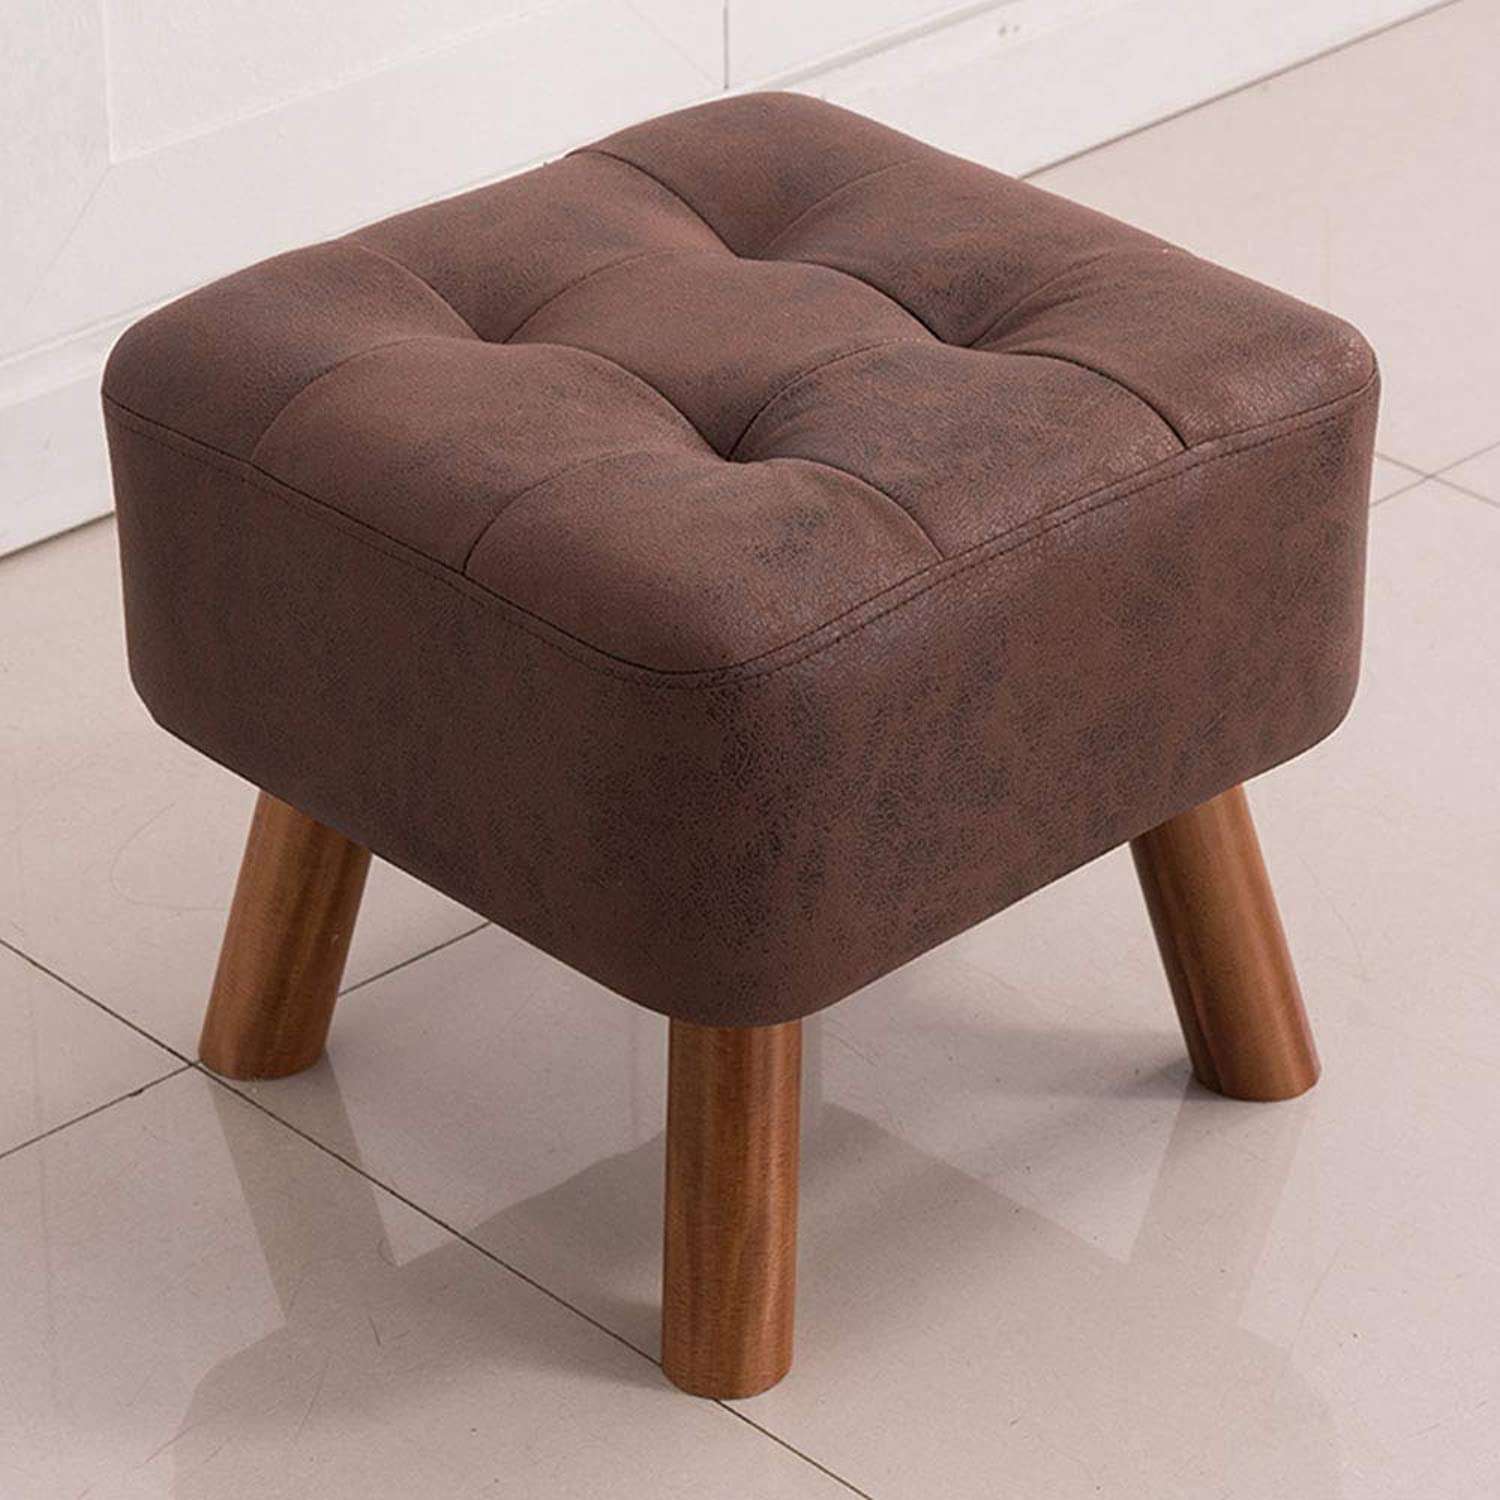 LJJL Stool, Change shoes Stool Solid Wood Stool Stool Sofa Bench Coffee Table Sitting Pier Dressing Stool 3 colors 15.7 ×15.7 ×12.6  (color   B)